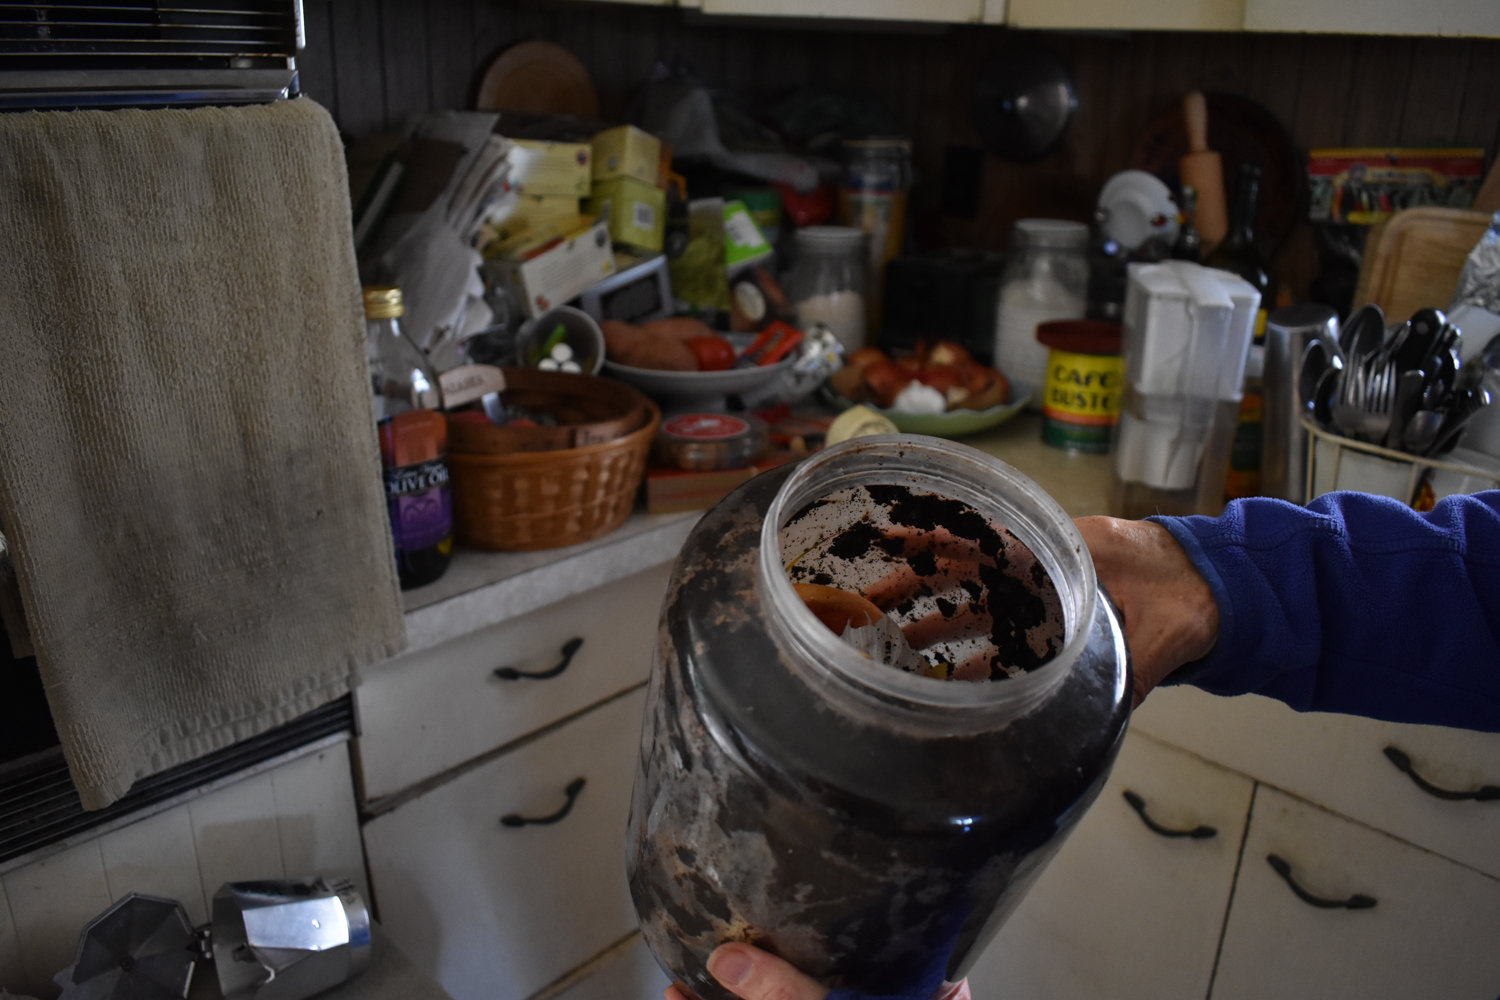 Debbi Dolan holds up a jar filled with compost inside her home. She uses compost throughout her garden.